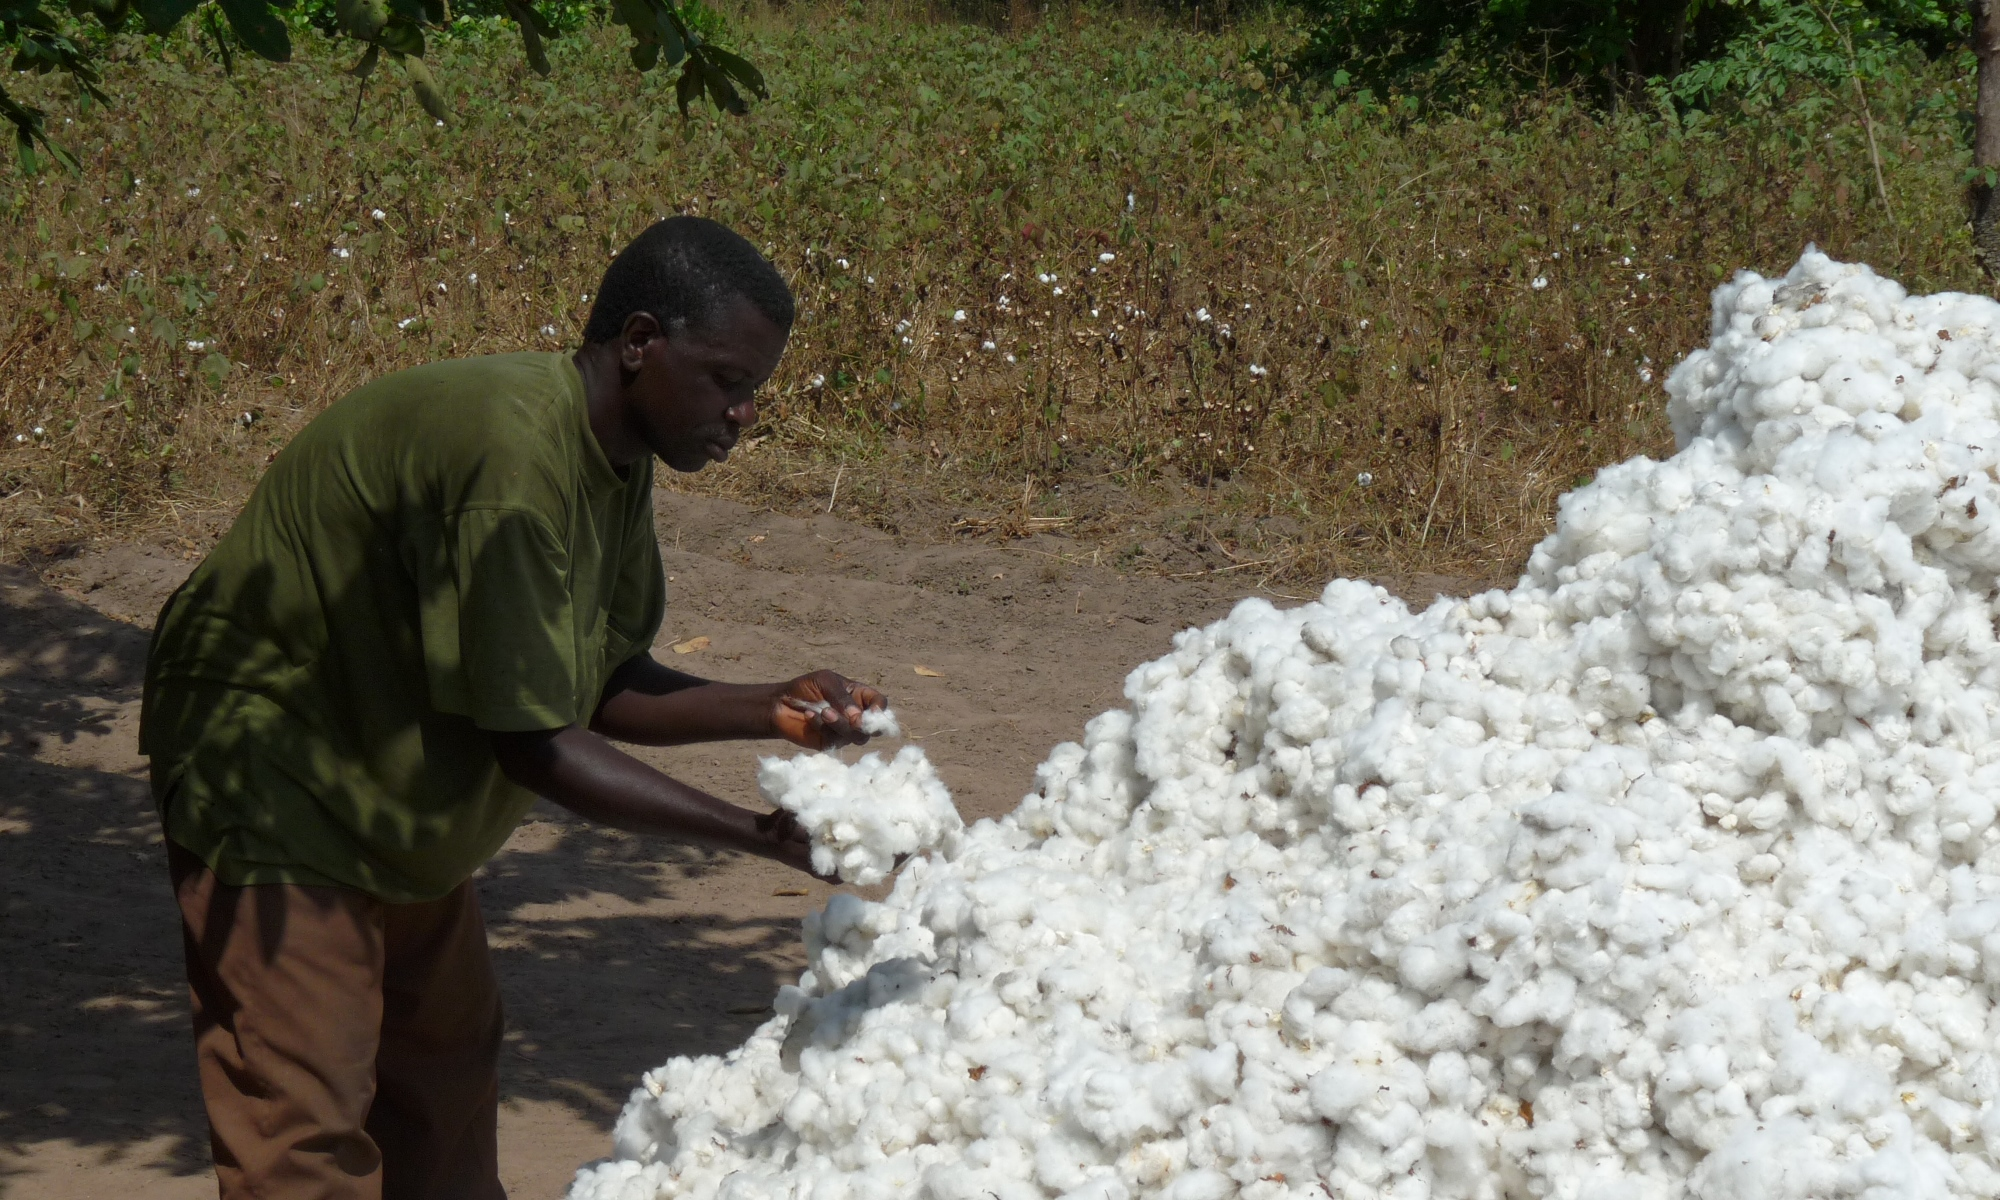 Cotton farming in Benin, West Africa